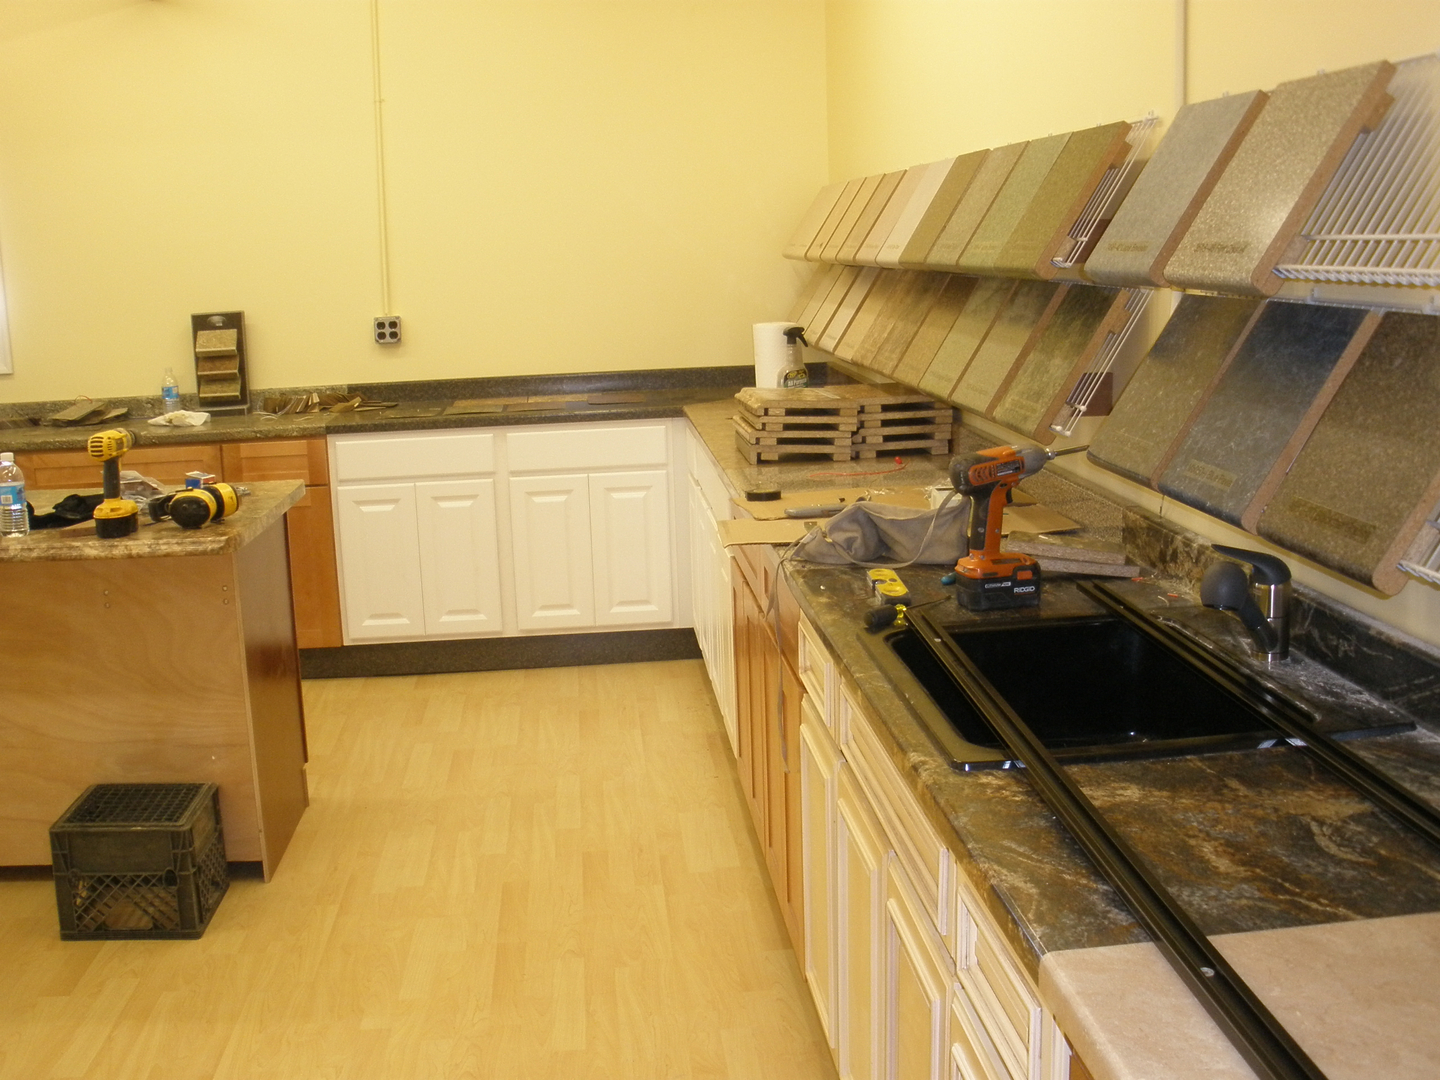 Workshop Countertop The Countertop Outlet In Peabody Ma About